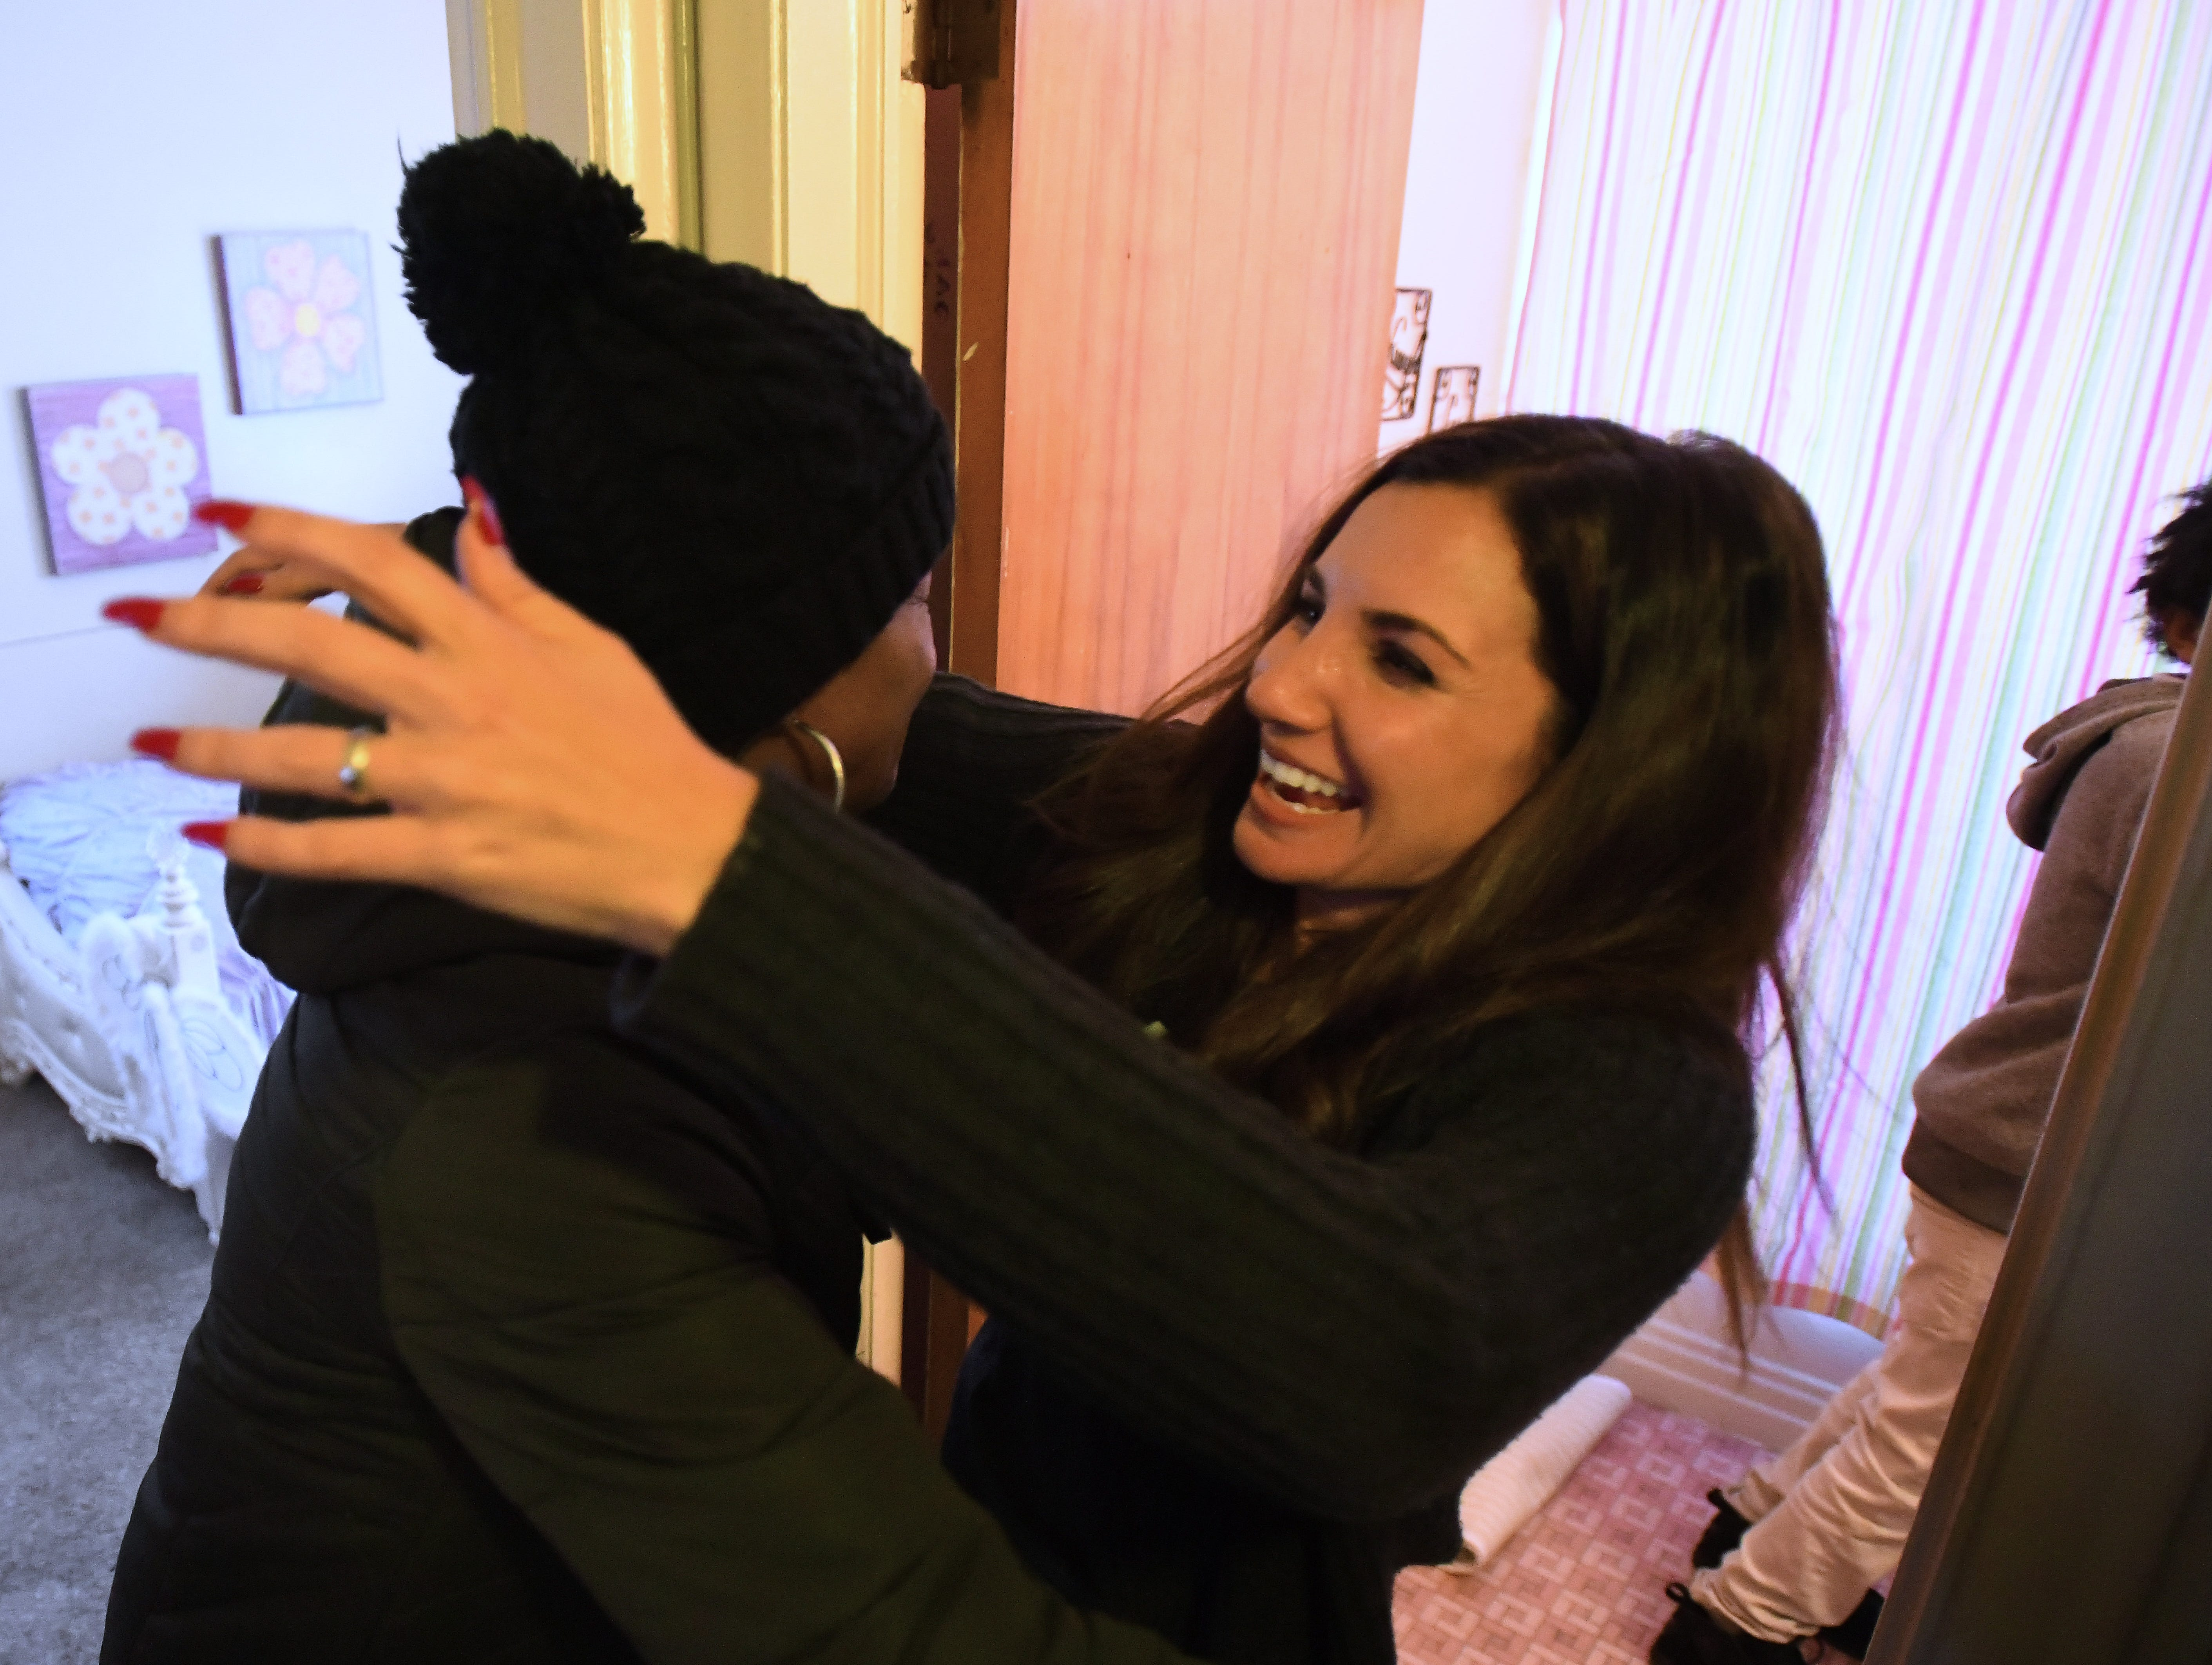 Jamiliah Powers-McCoy, left, and Humble Design CEO and co-founder Treger Strasberg hug during the reveal of her newly designed and furnished home.